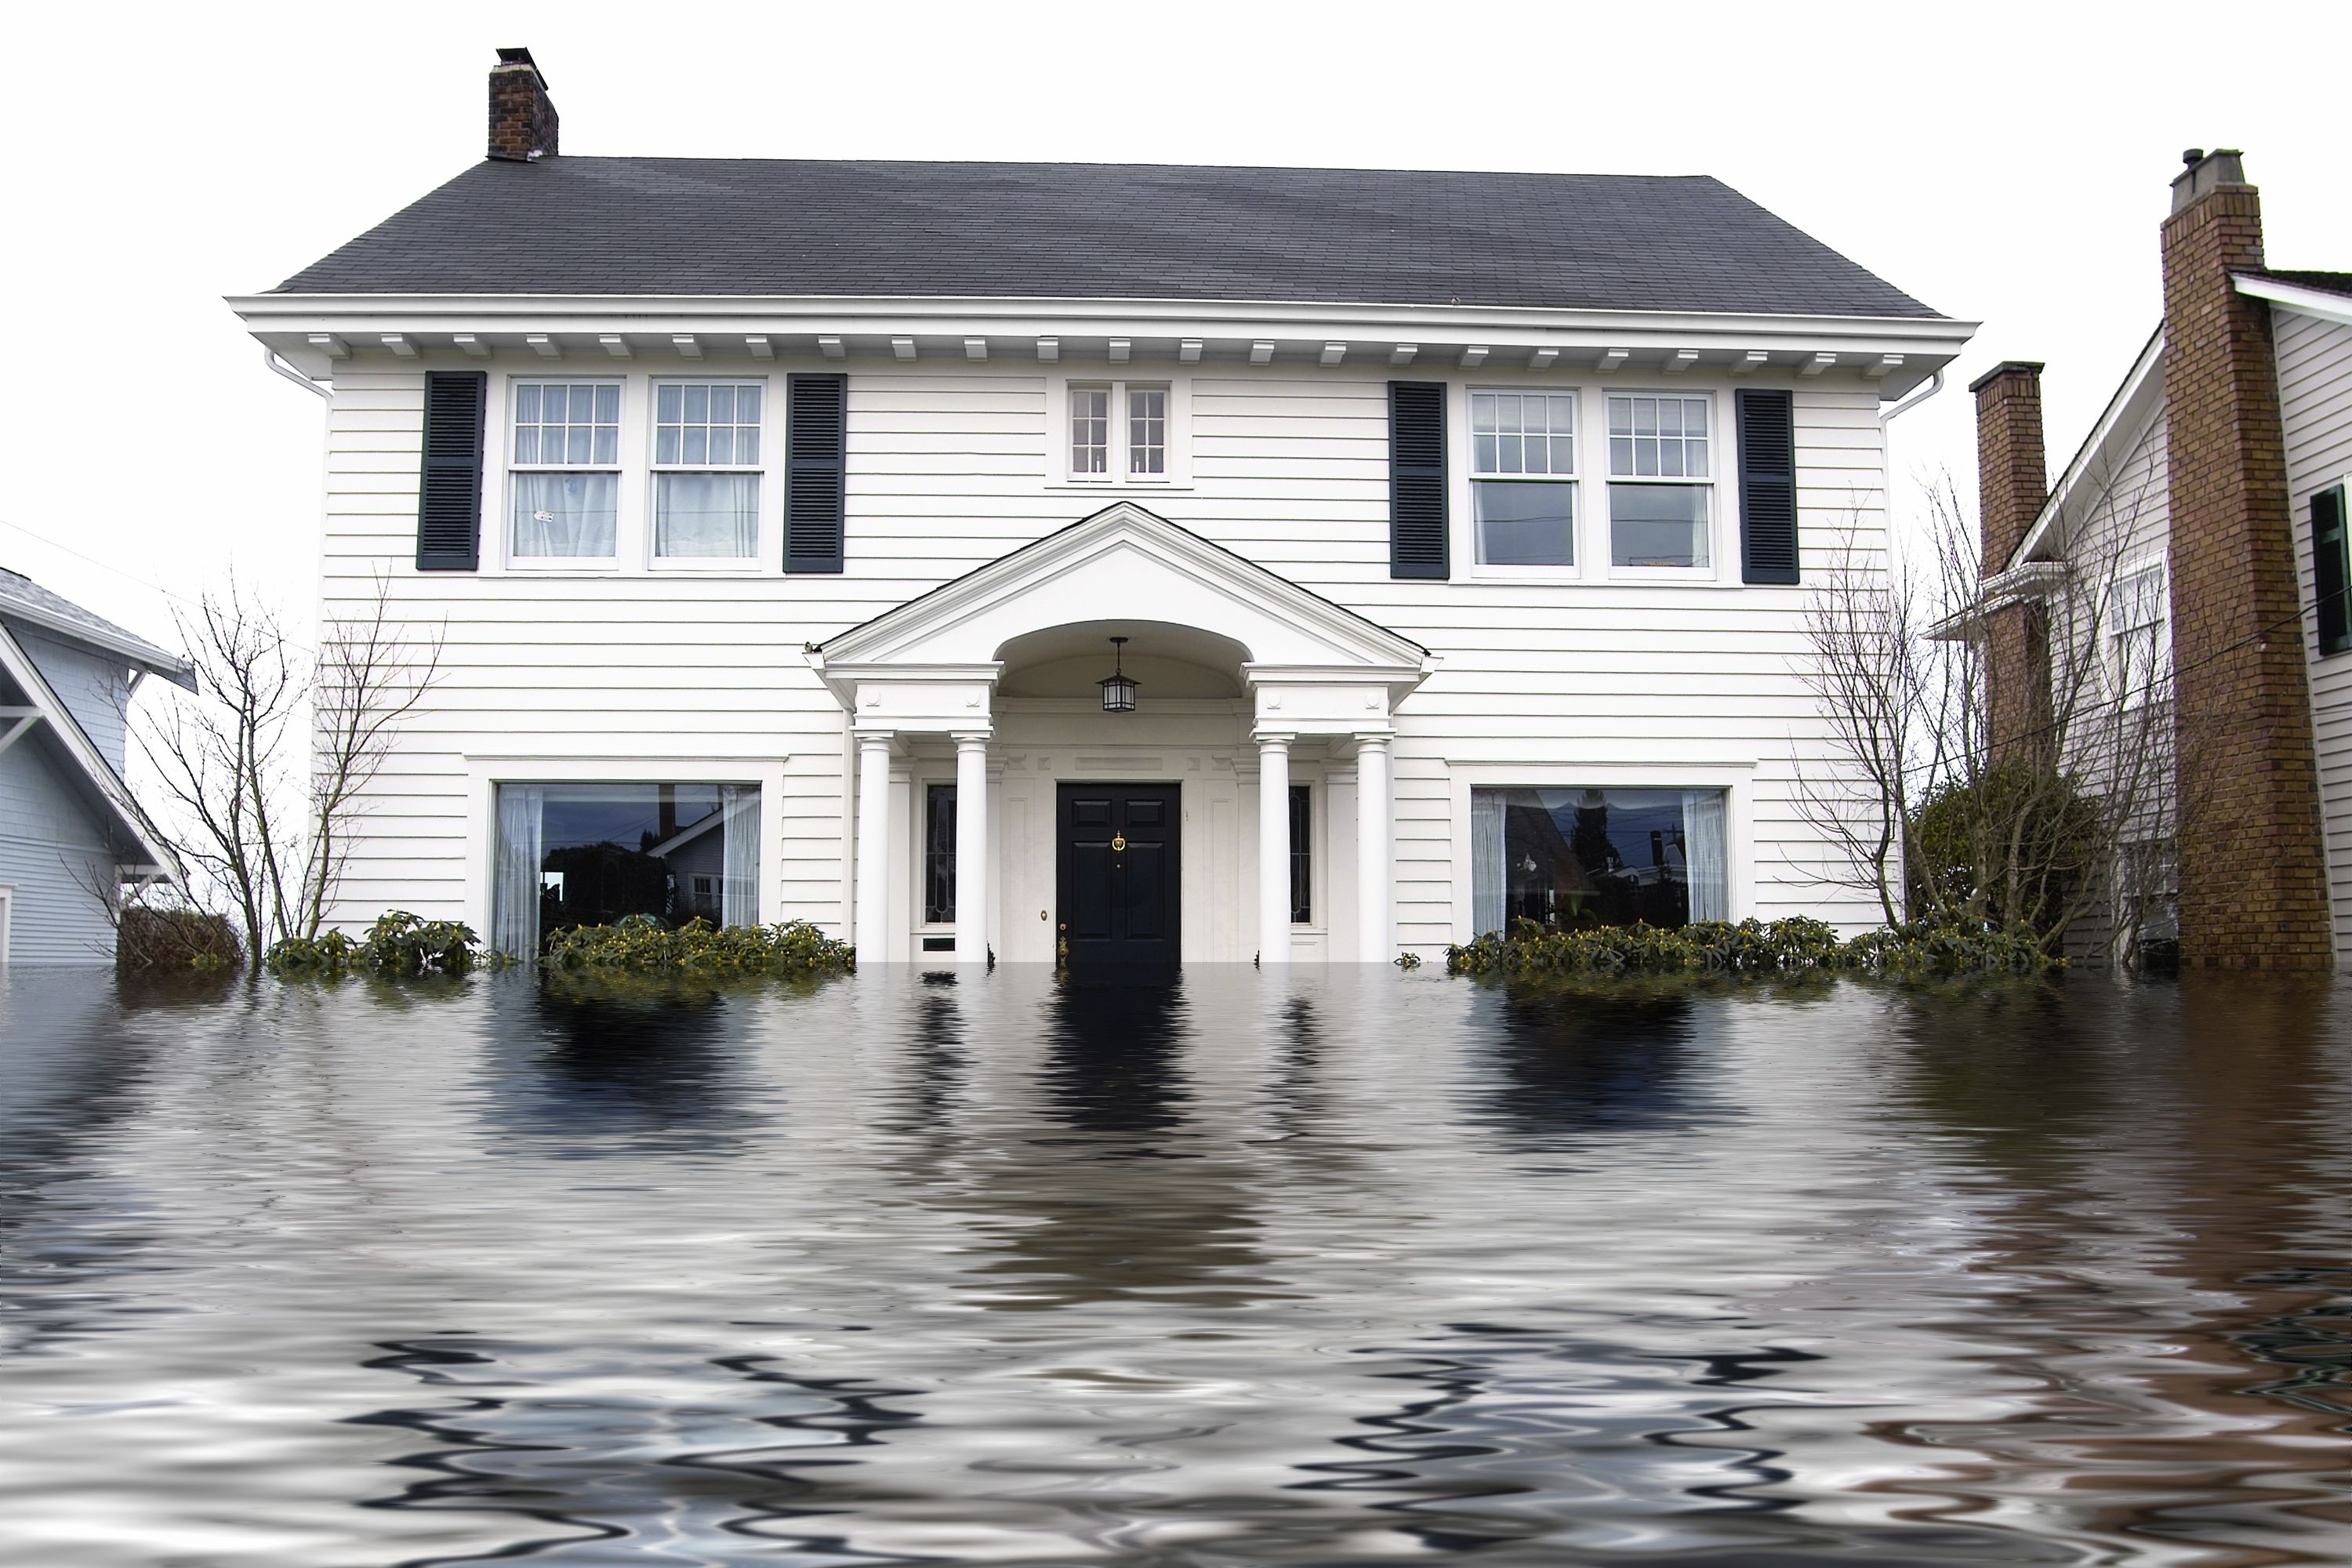 25 Off Cleaning Flood Damage Flood Insurance Water Damage Repair